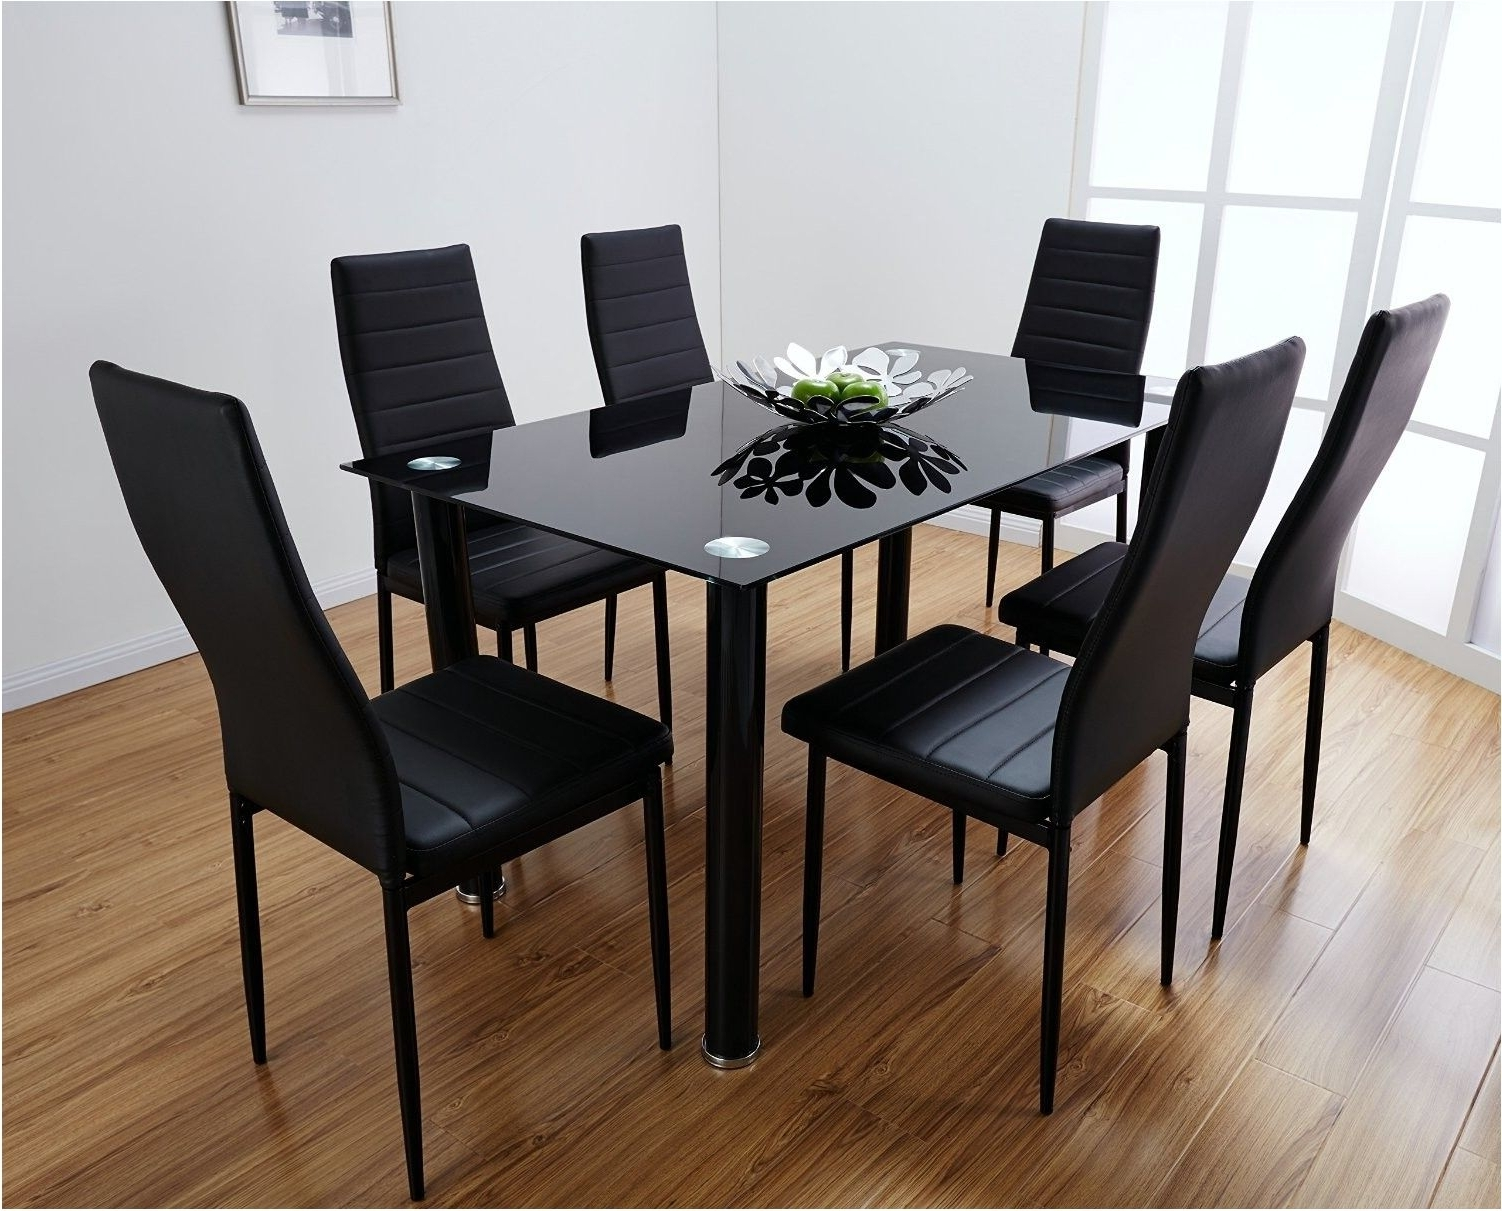 Fashionable Incredible Black Glass Dining Table Set With 4 Faux Leather Chairs Regarding Glass Dining Tables And Leather Chairs (View 6 of 25)